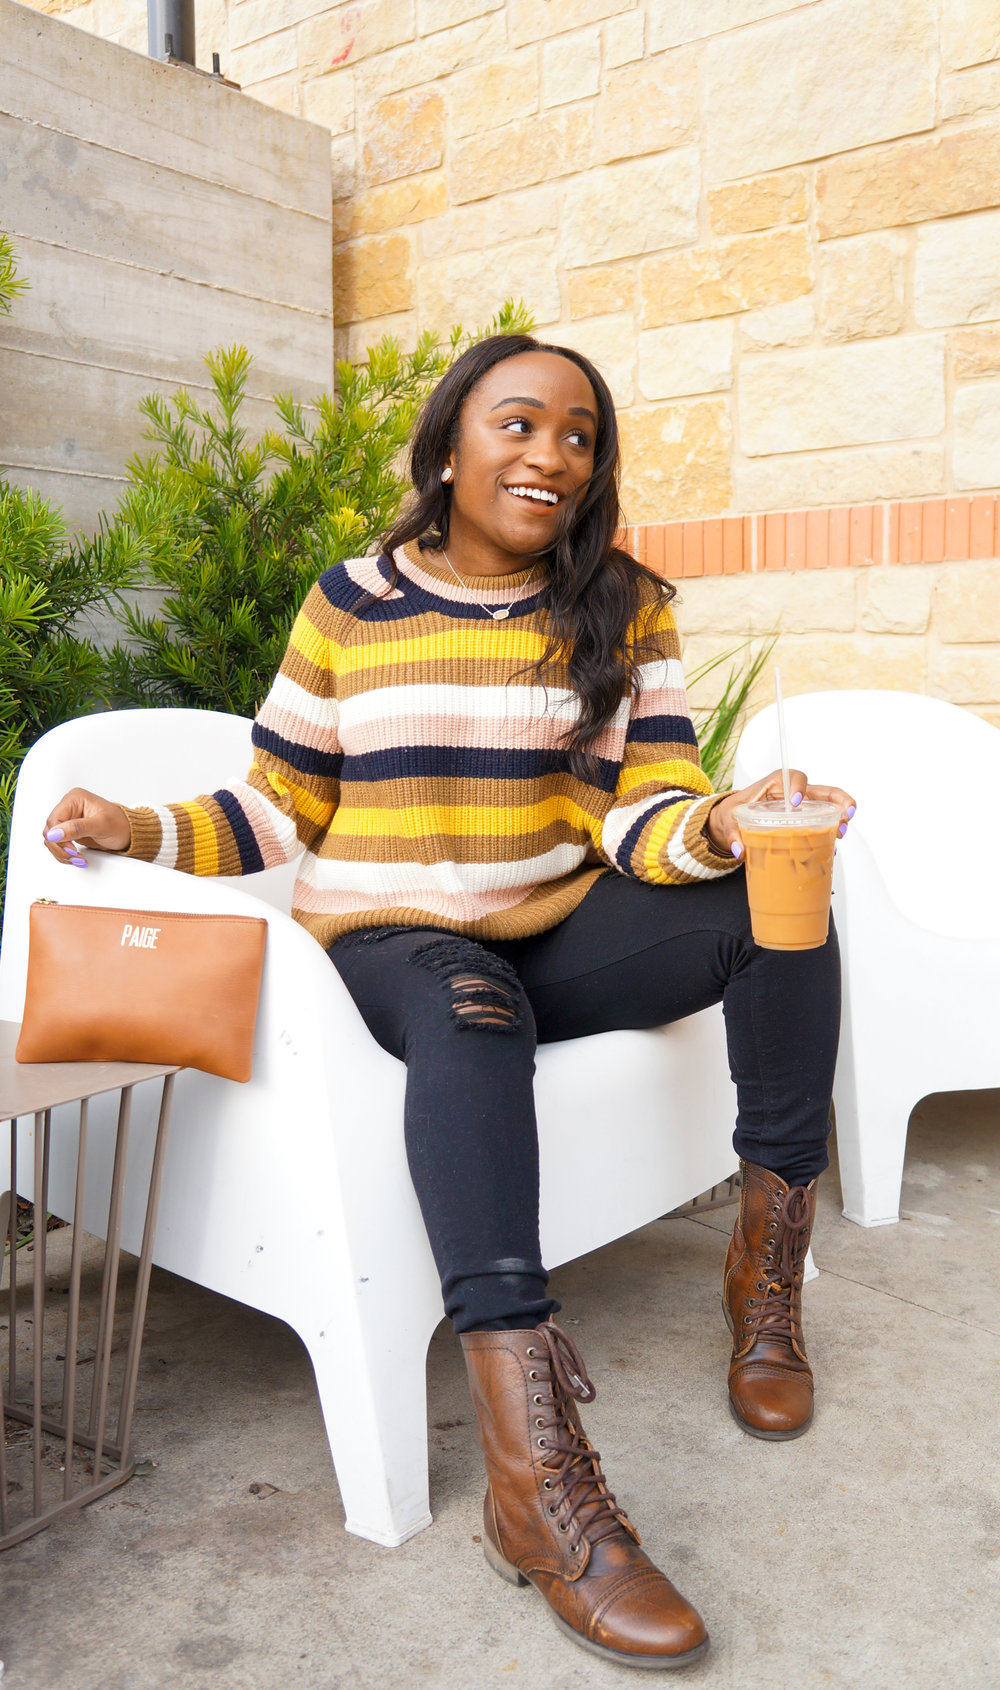 THE DEETS:  Striped Tilden Pullover -   Madewell  ; High Waist Ripped Stretch Jeggings -   Express  ; Laceup Combat Boots -     Steve Madden  ; Large Leather Clutch -   Madewell  ; Ellie Stud Earrings -   Kendra     Scott  ; Elisa Pendant Necklace -   Kendra Scott  ; Clubmaster Sunglasses -   Ray-Ban